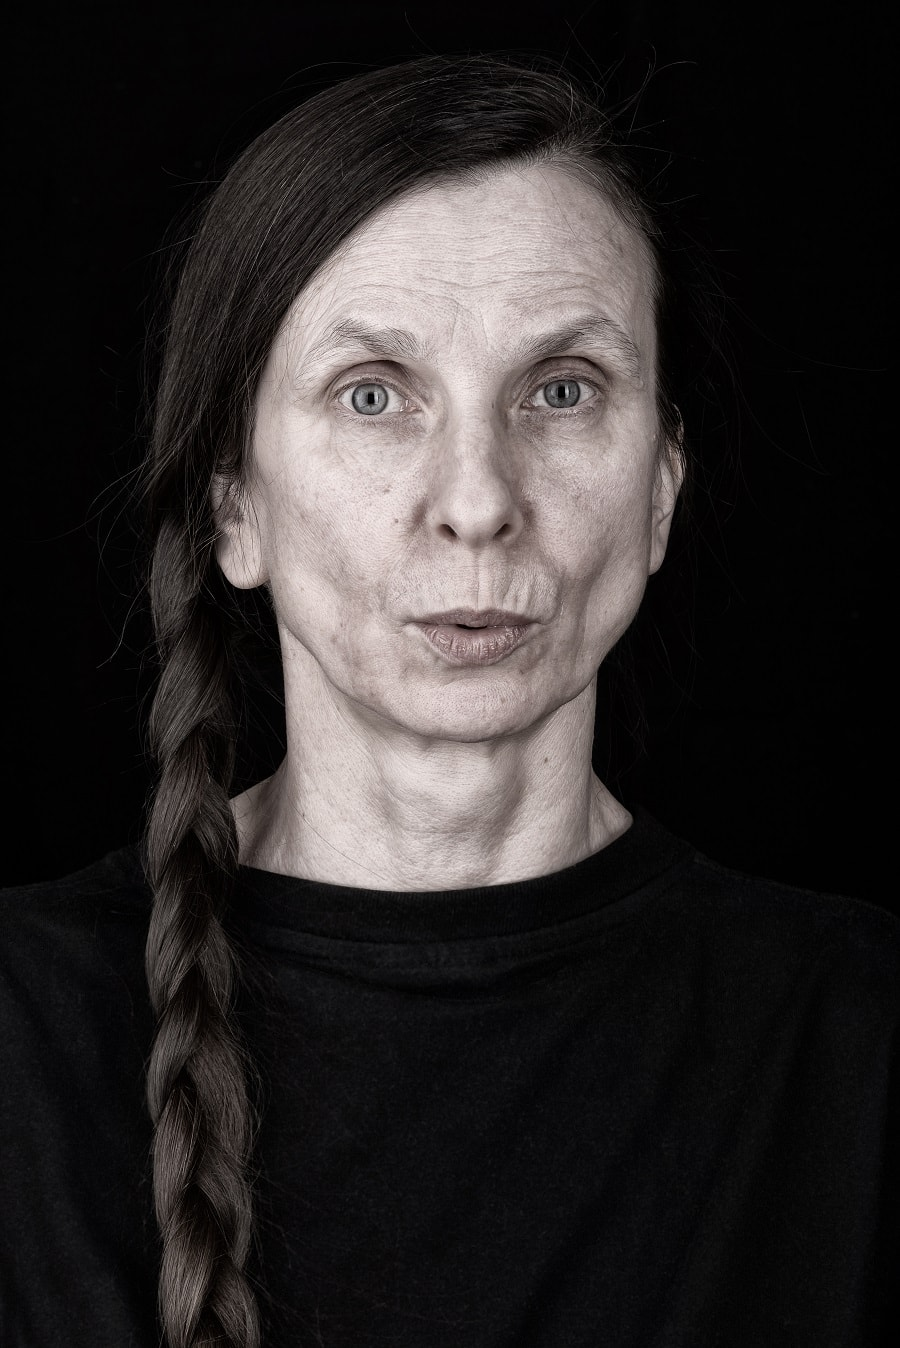 woman over 50 with long braids